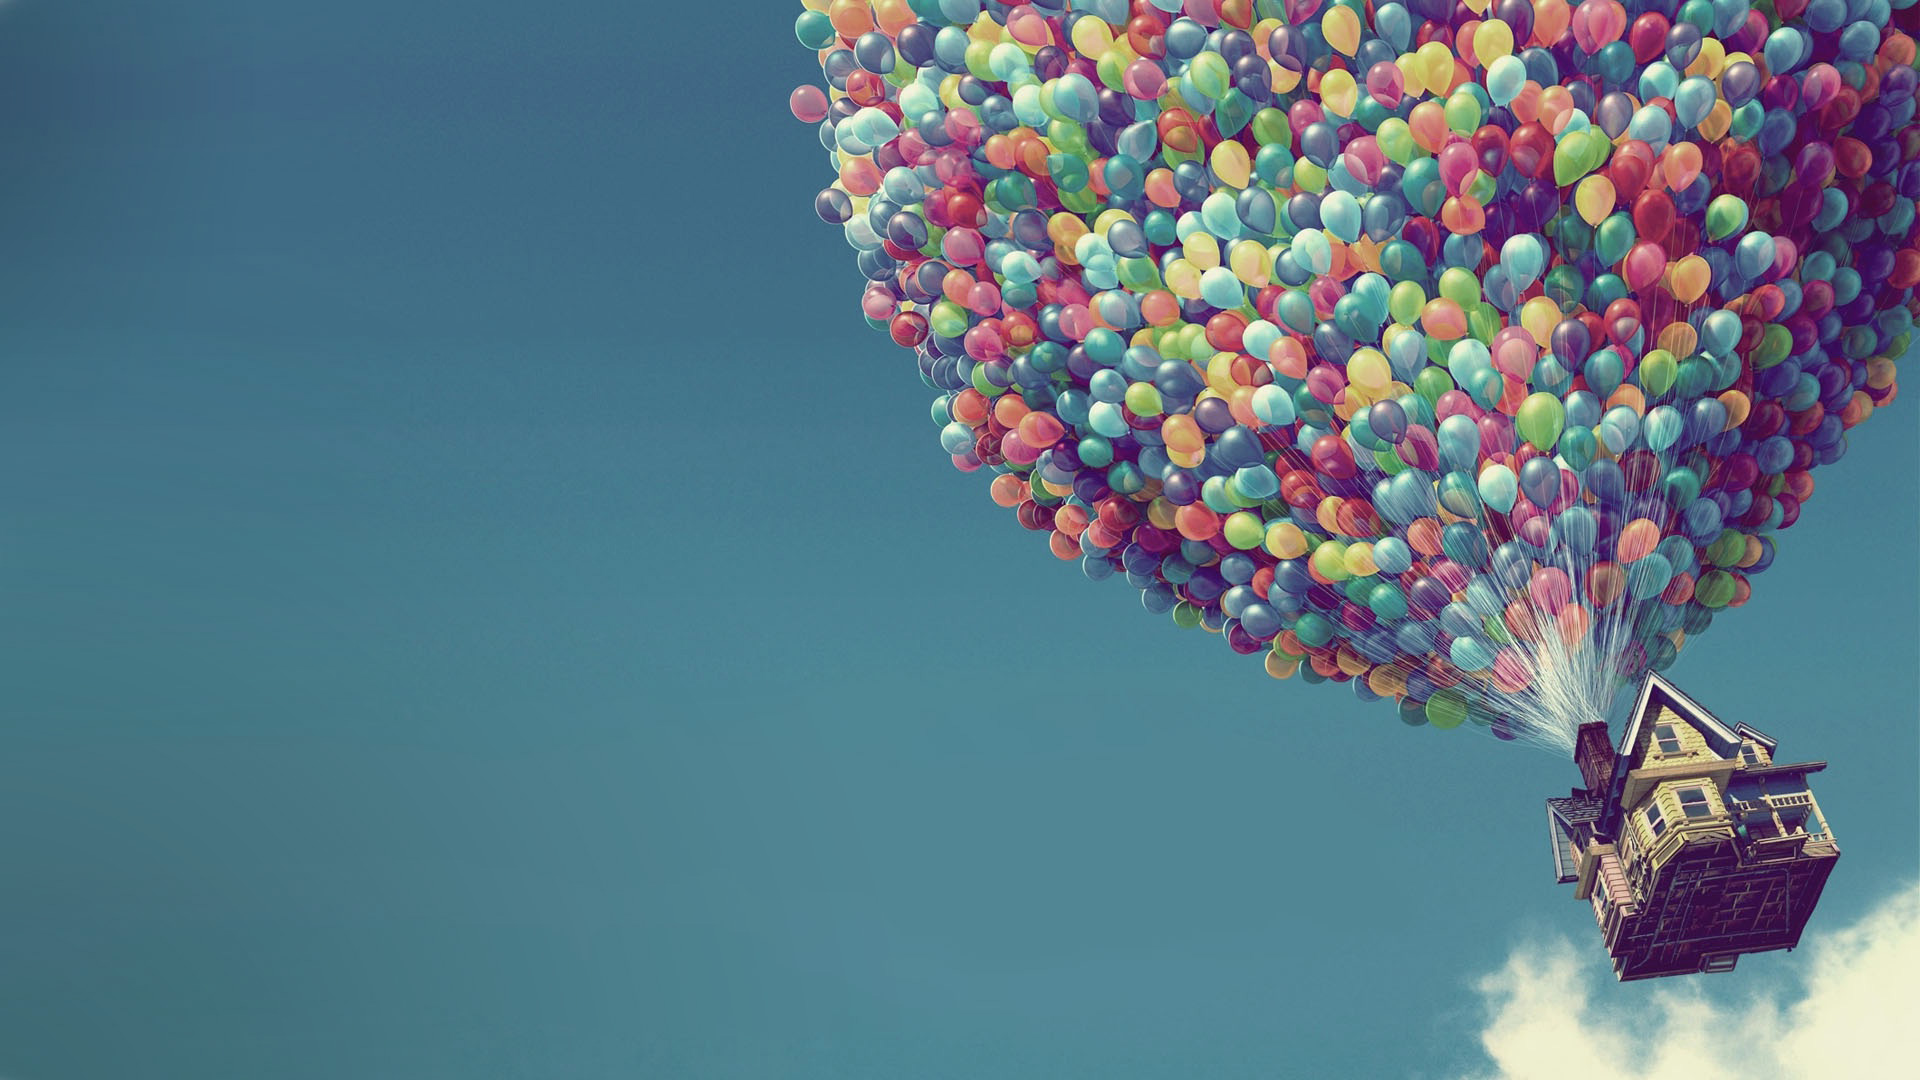 Pixar cartoon Full HD Wallpaper Balloons and the House in the sky 1920x1080